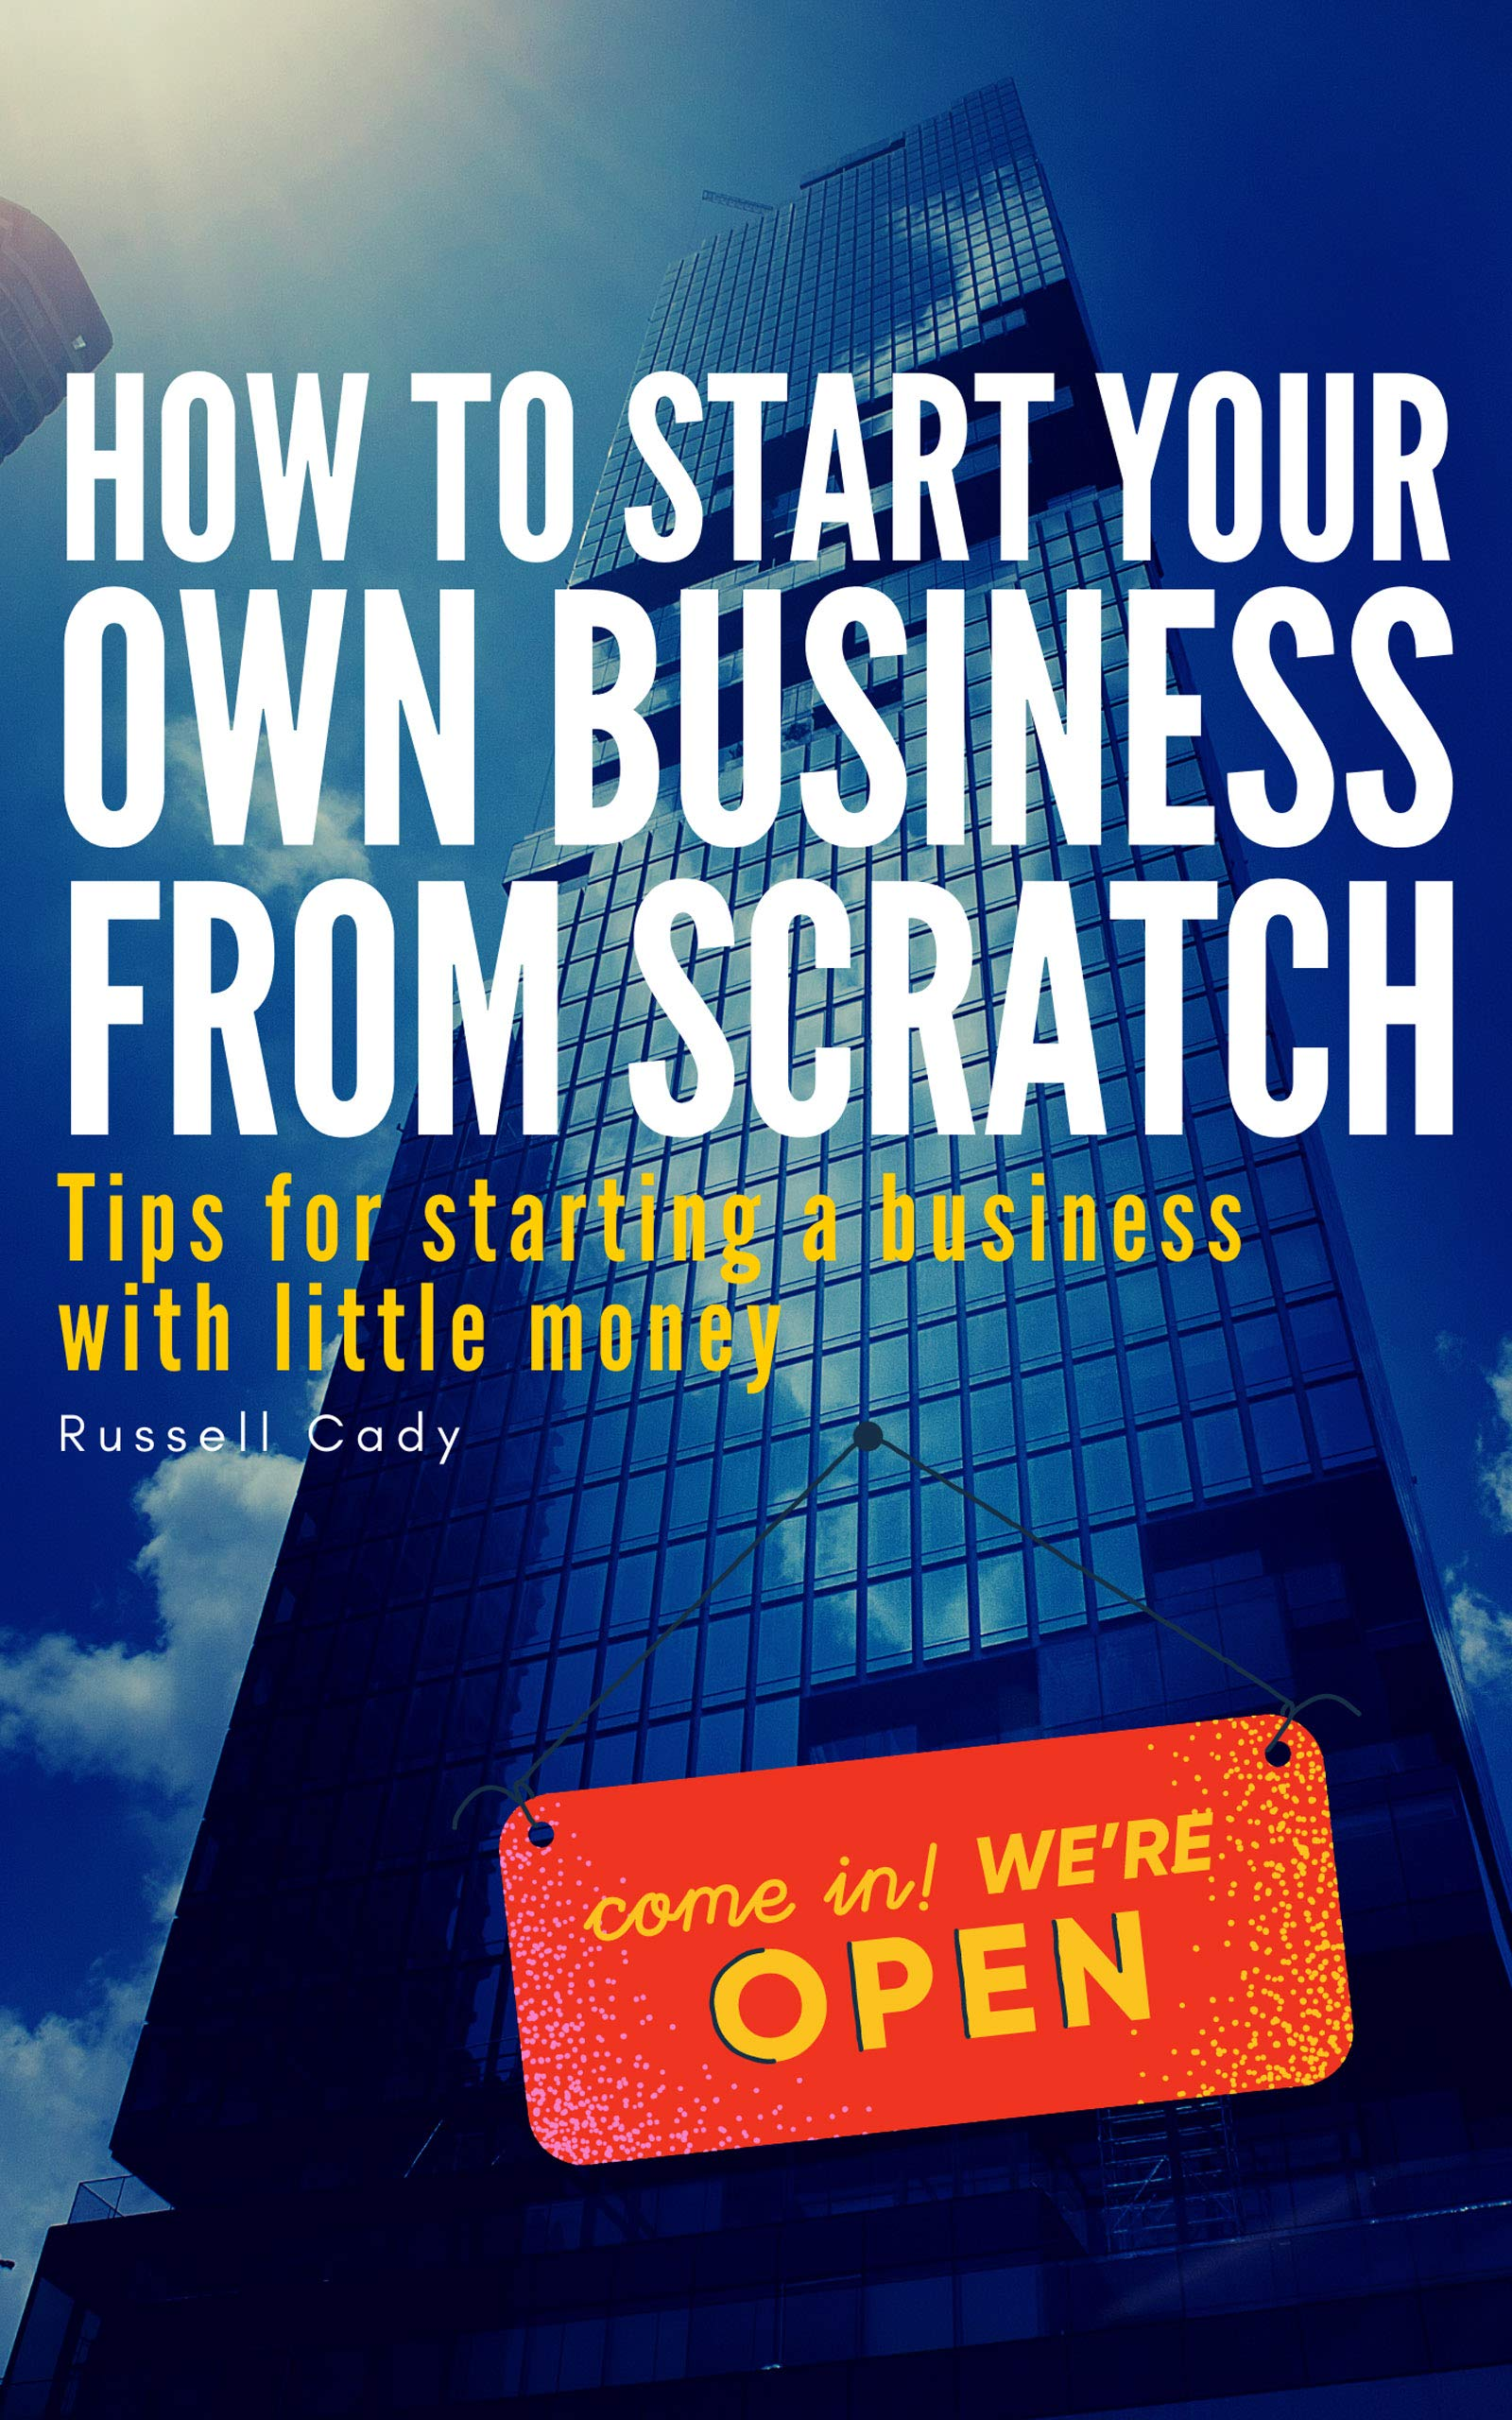 HOW TO START YOUR OWN BUSINESS FROM SCRATCH: Tips for starting a business with little money